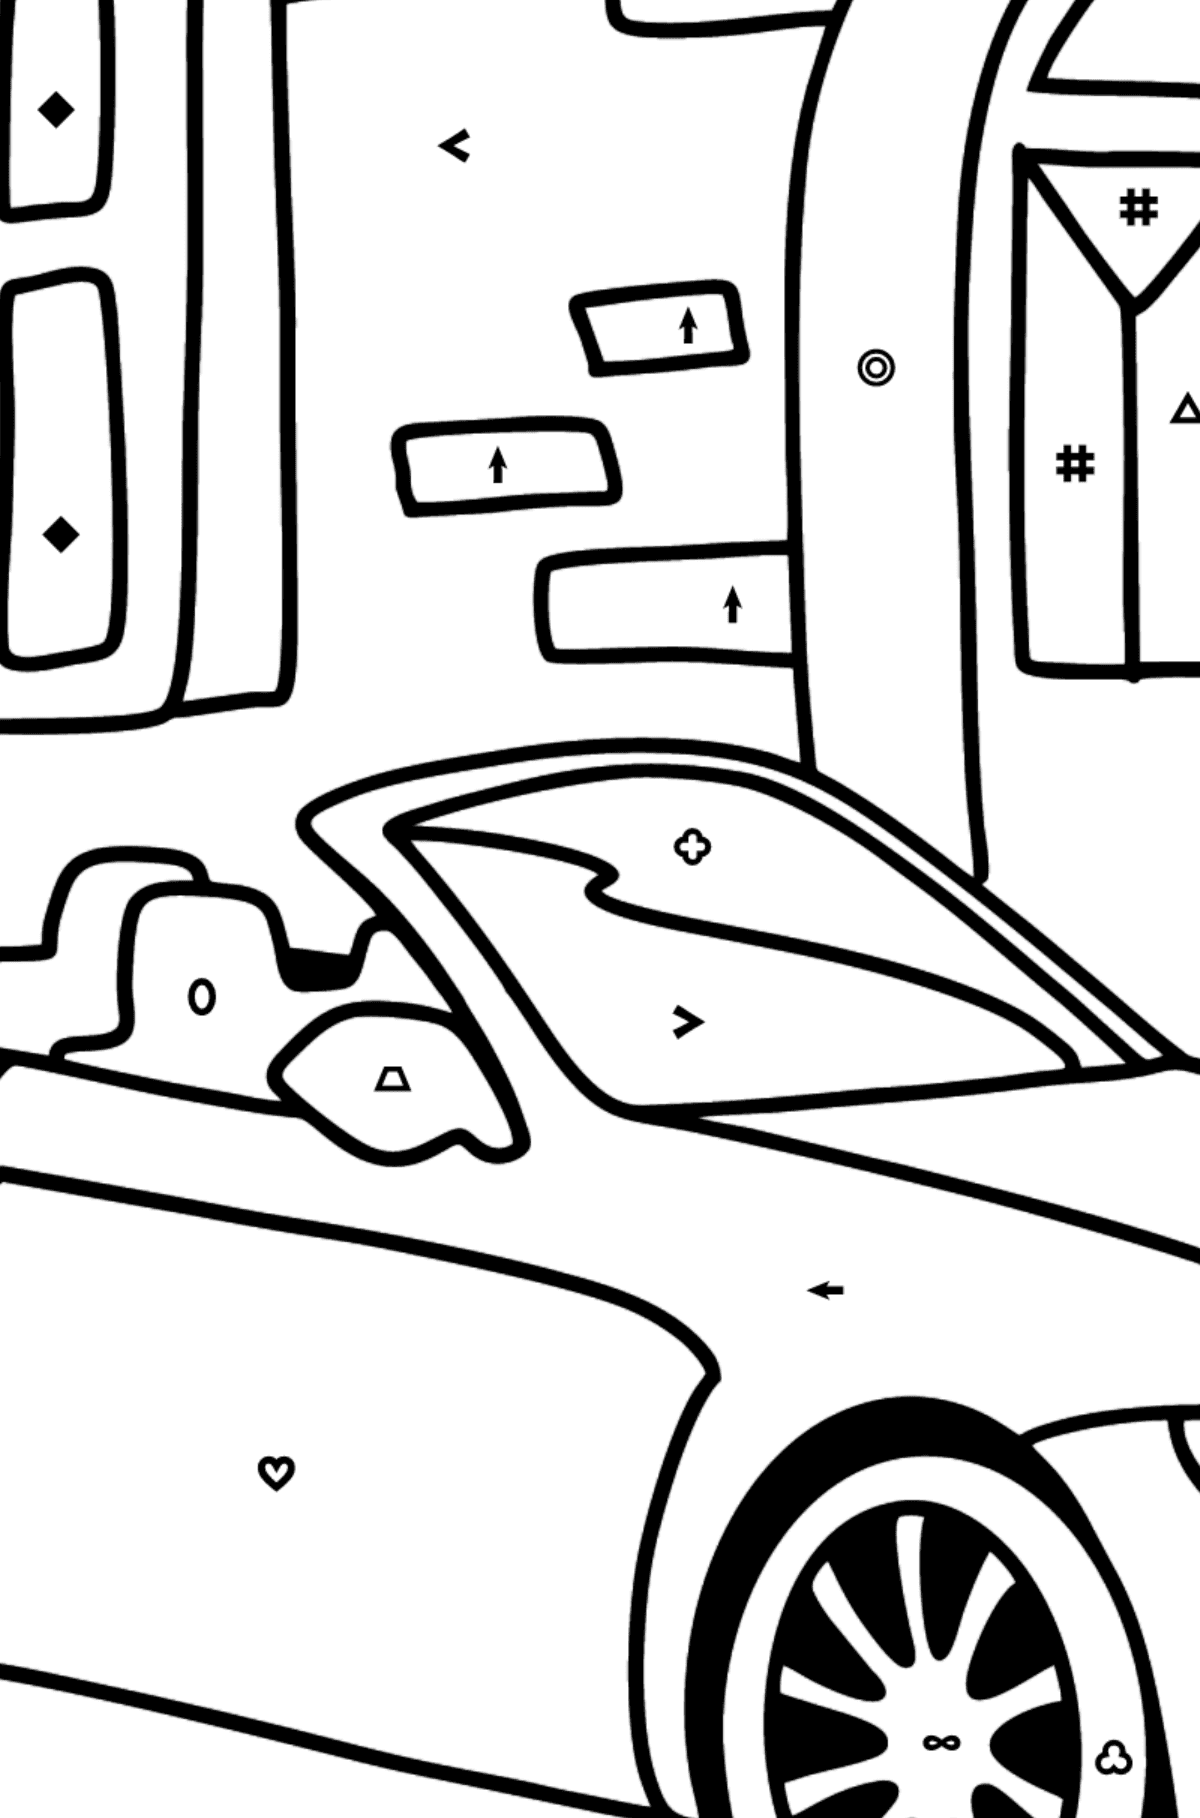 BMW Convertible coloring page - Coloring by Symbols and Geometric Shapes for Kids